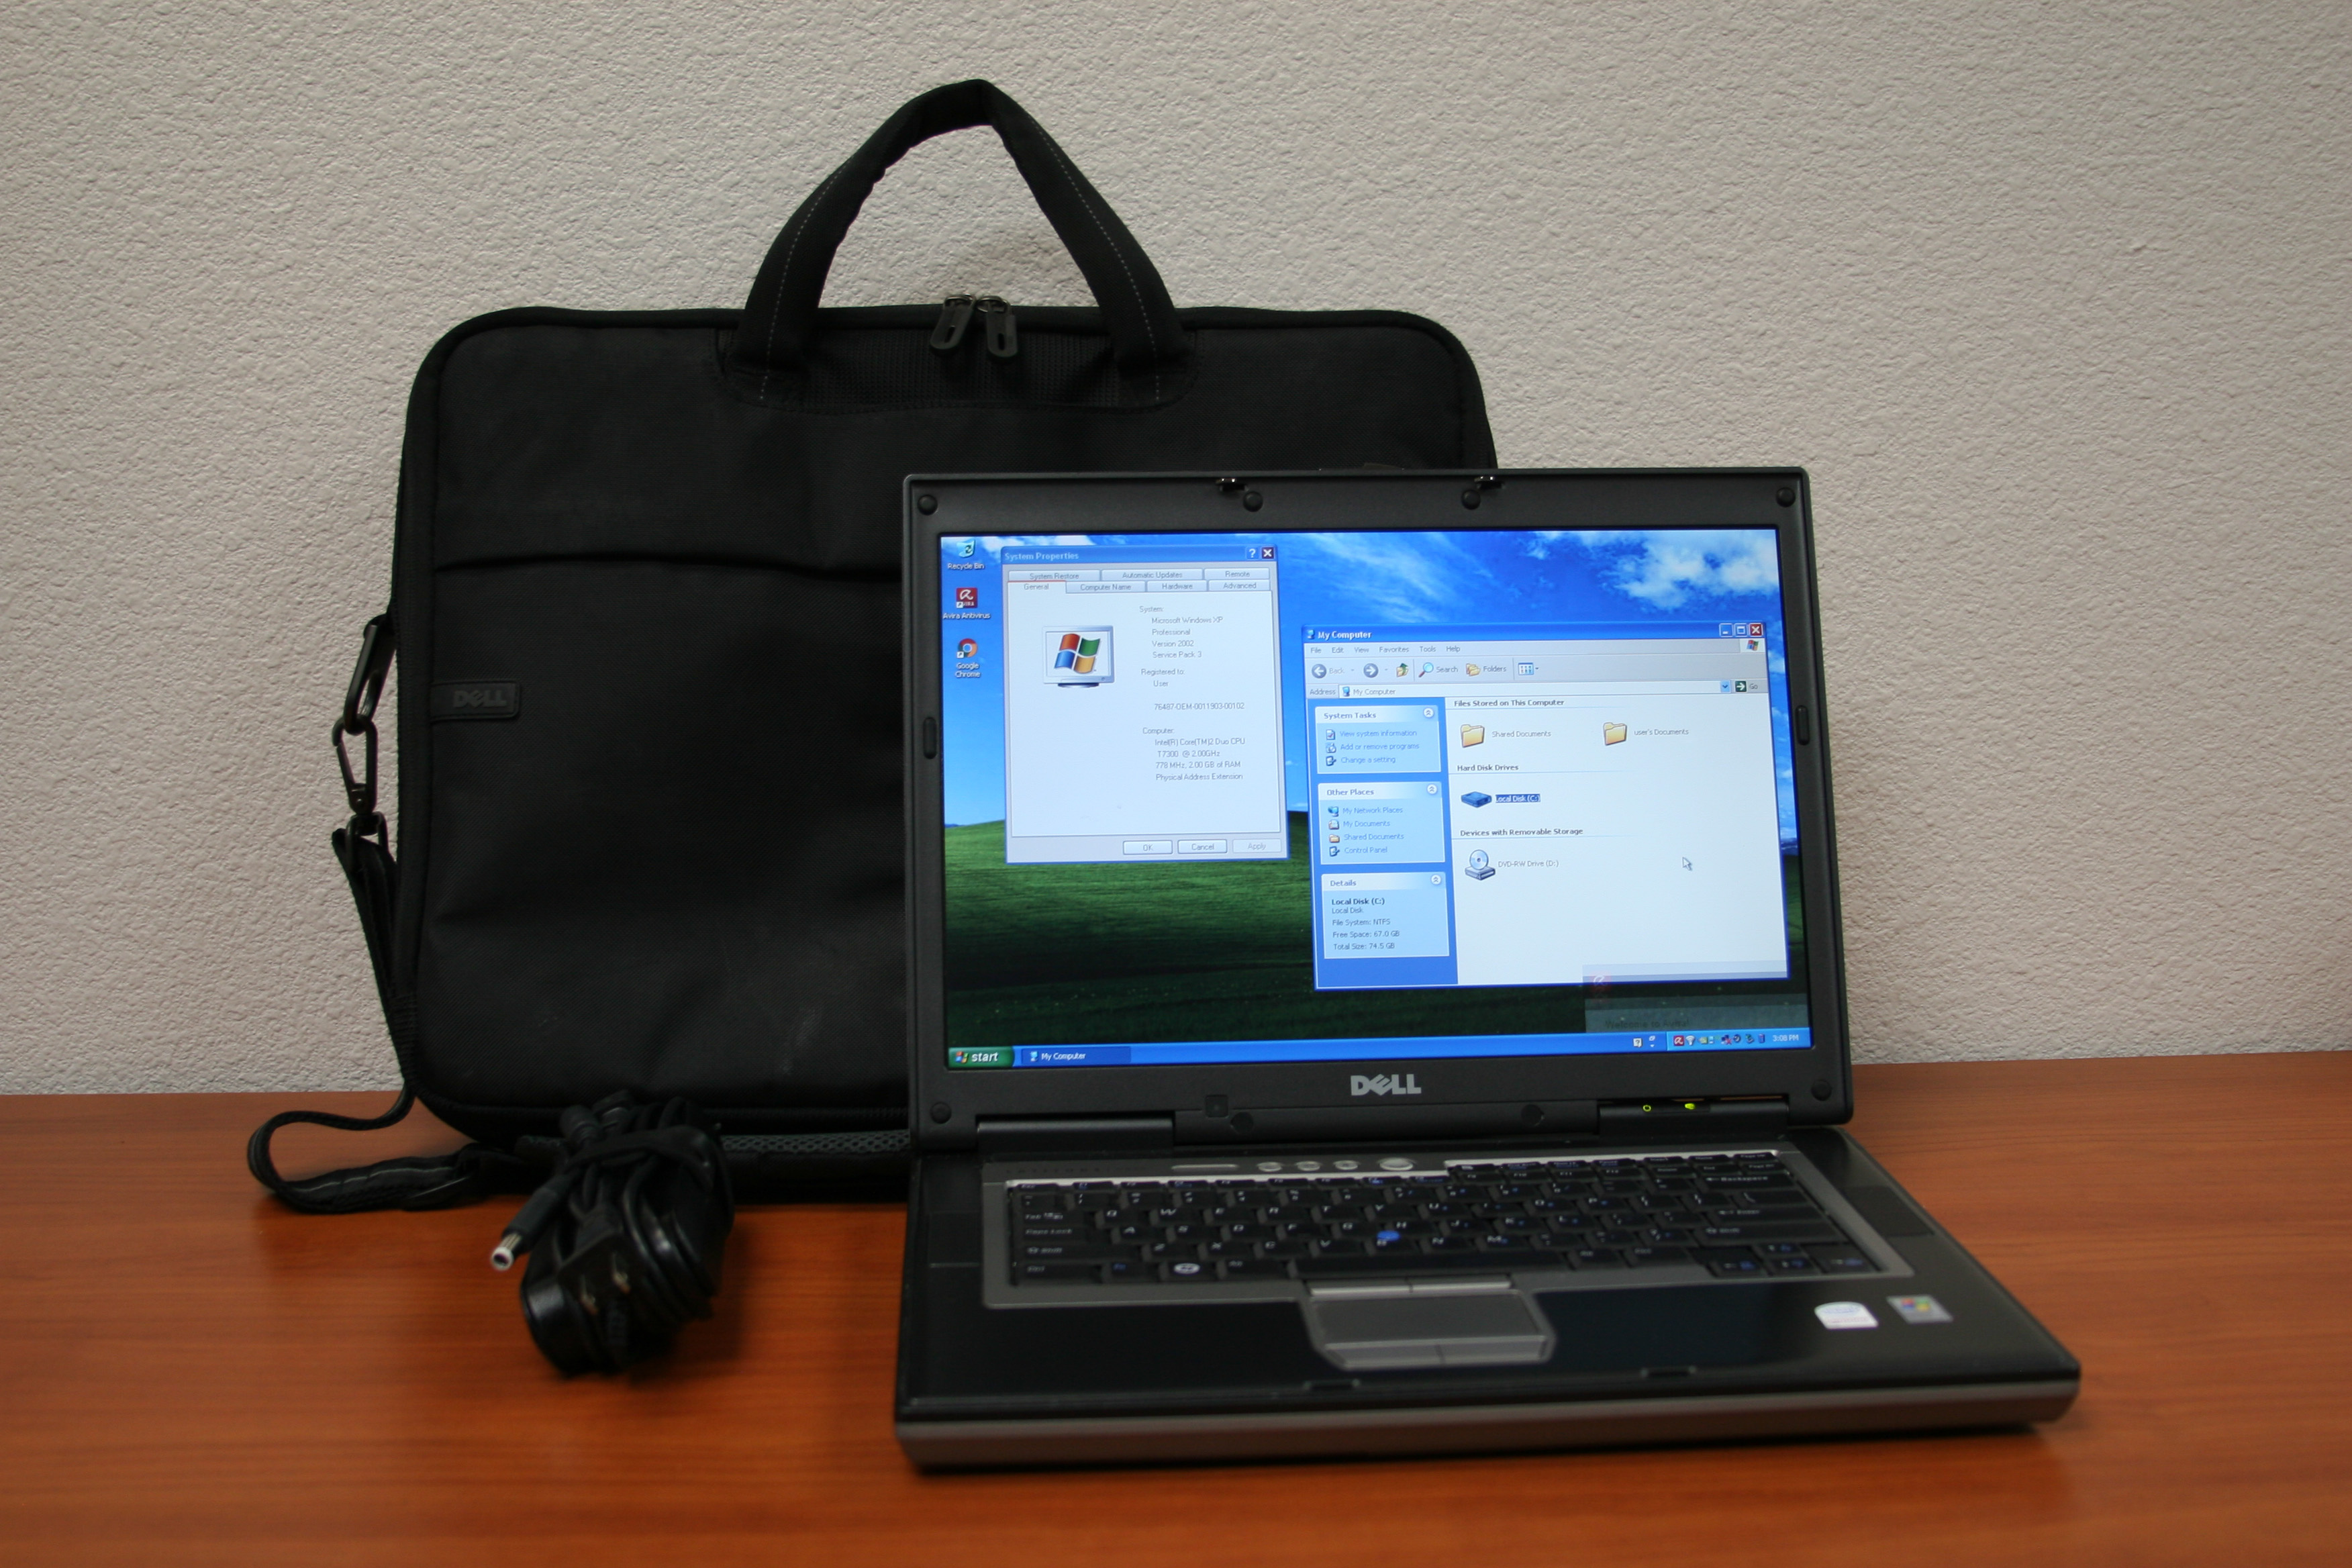 Dell latitude d830 touchpad driver available